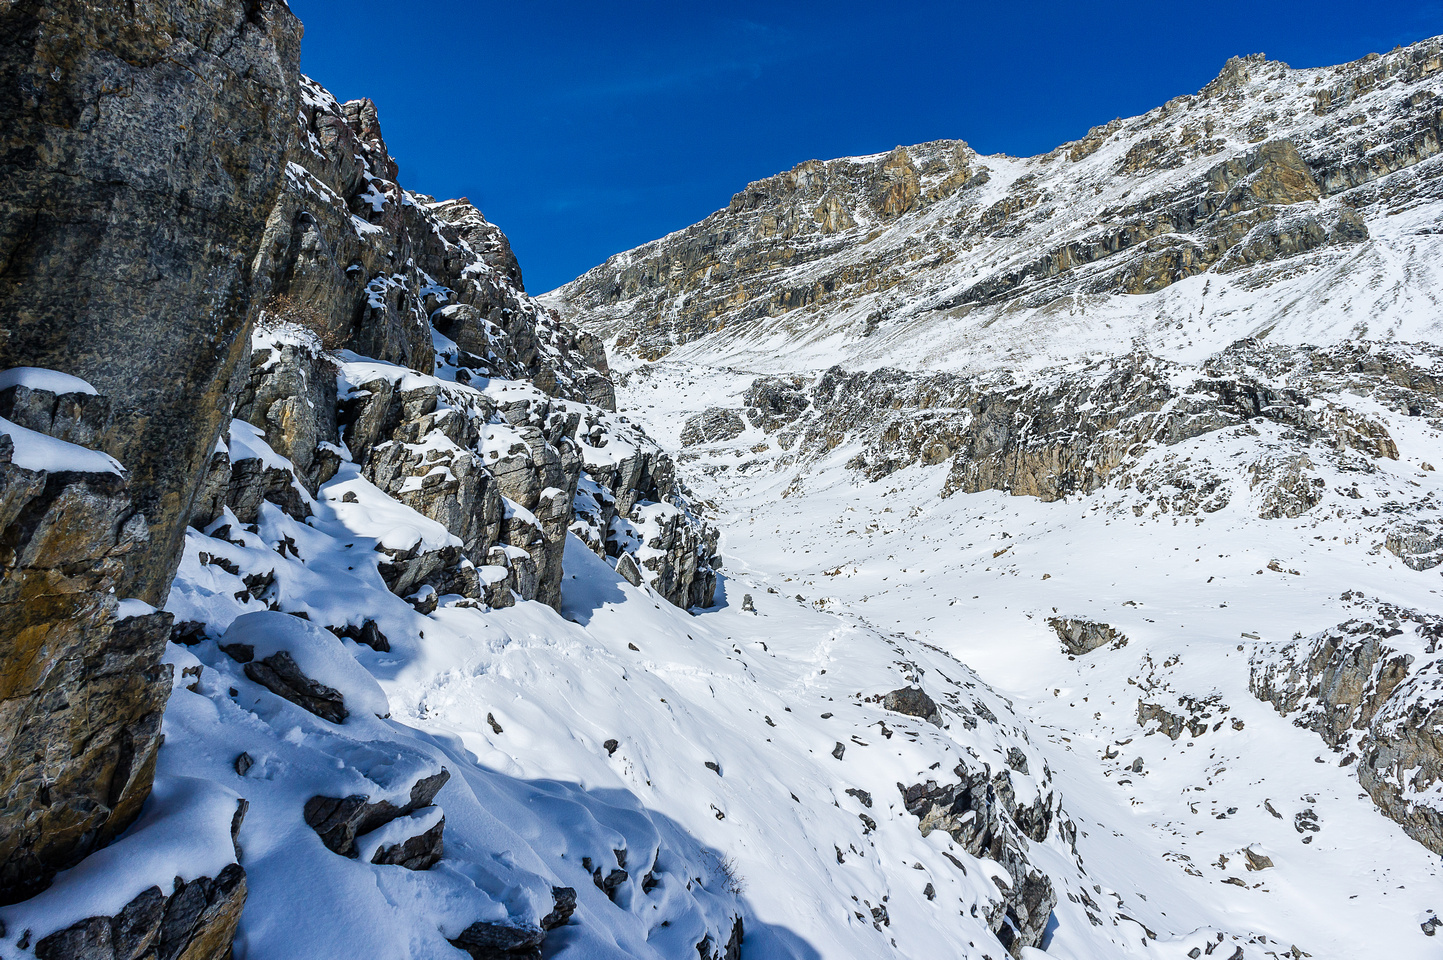 Looking back along the ledge route to the col and summit at upper right.